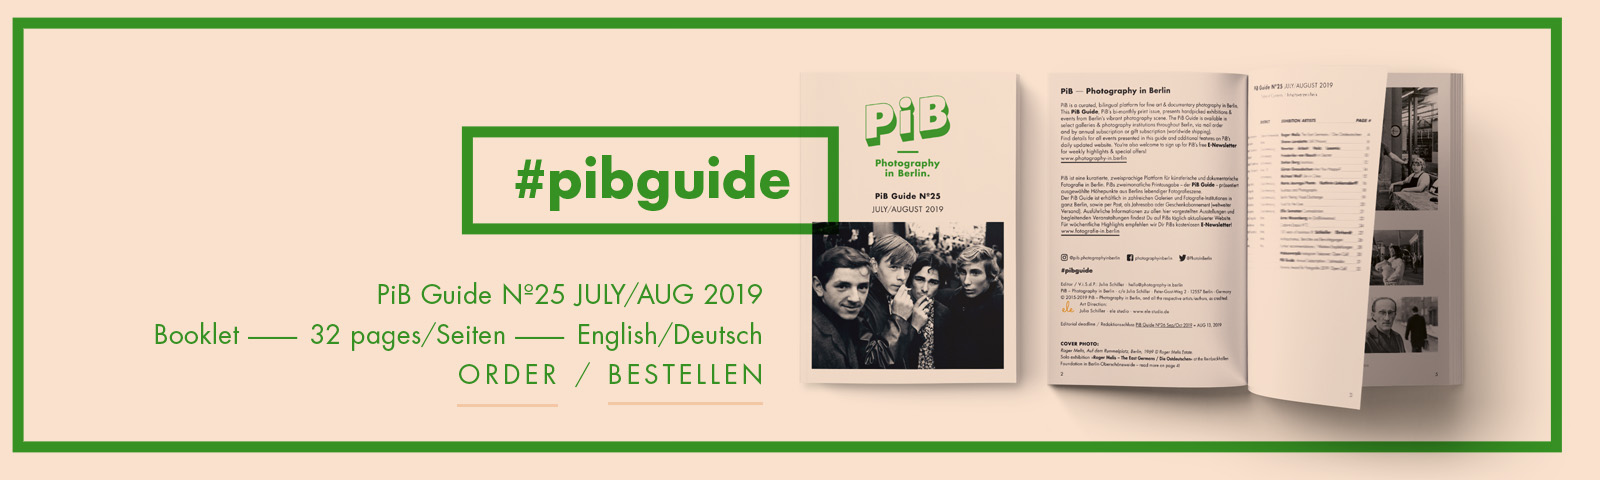 The PiB Guide Nº25 JULY/AUG 2019 © PiB – Photography In Berlin. #pibguide. COVER PHOTO: Roger Melis, Auf Dem Rummelplatz, Berlin, 1969 © Roger Melis Estate. Retrospective »Roger Melis – The East Germans / Die Ostdeutschen« At The Reinbeckhallen Foundation In Berlin-Oberschöneweide.